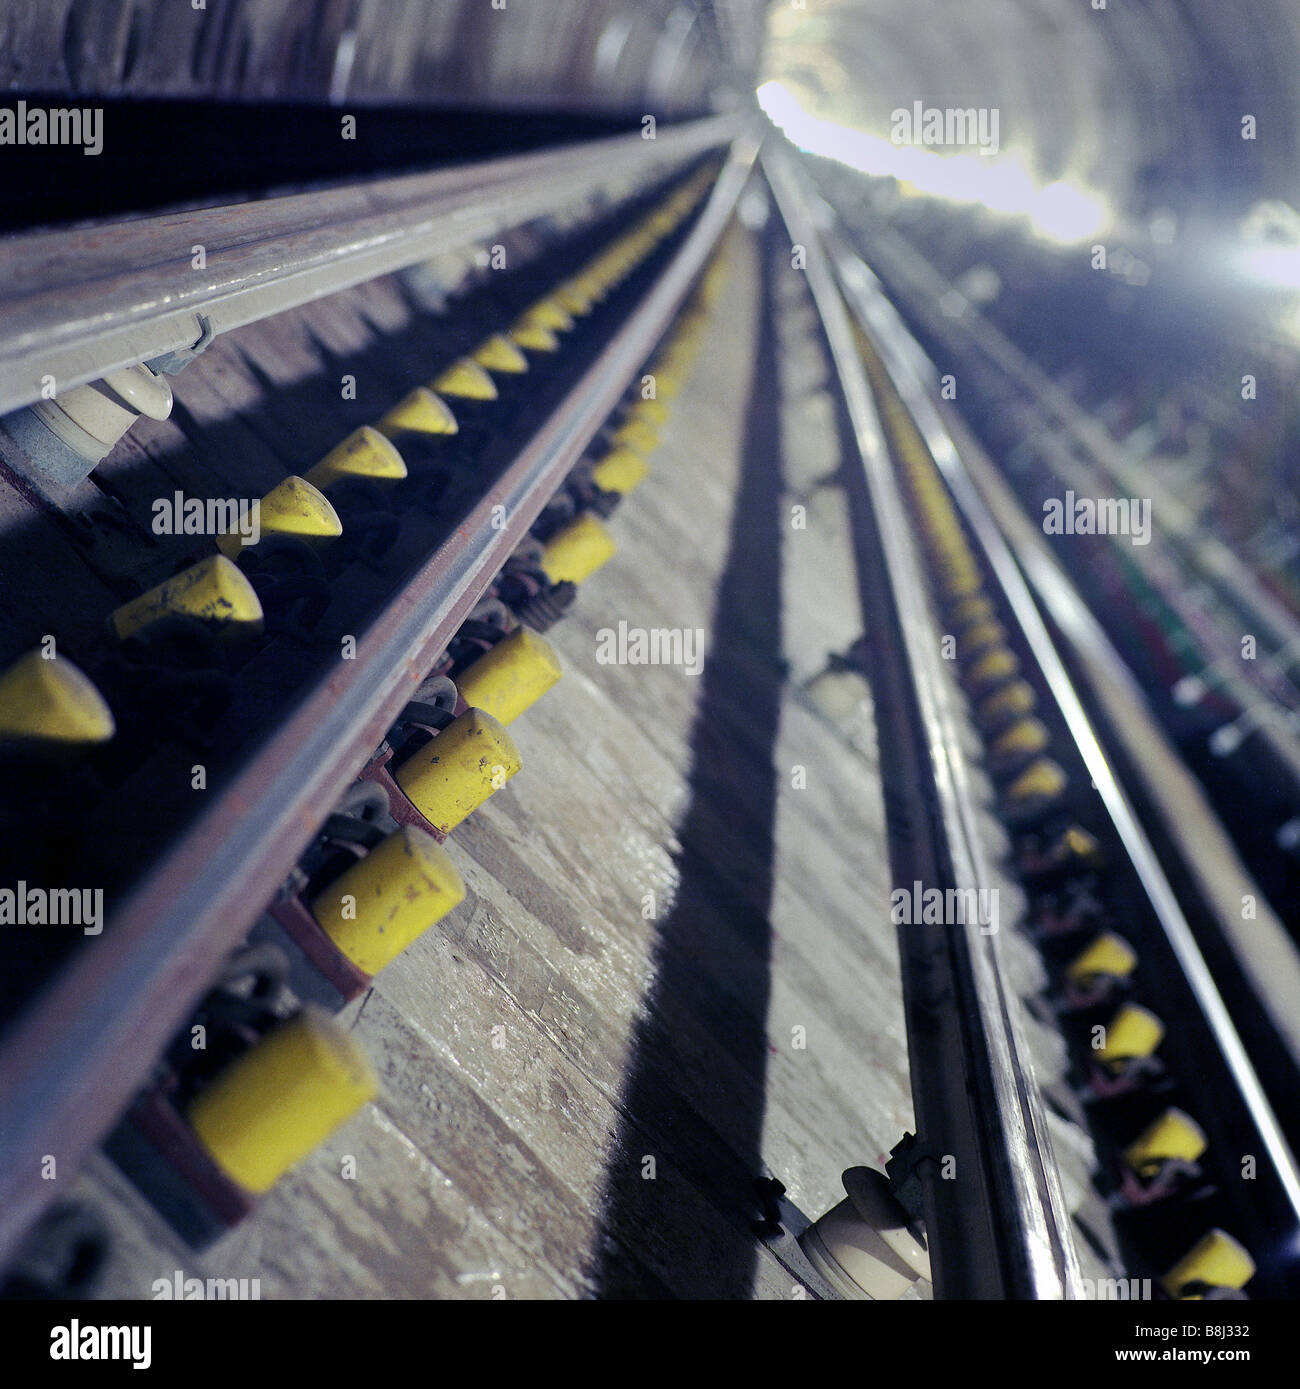 Newly laid trackwork on the Jubilee Line Extension, a part of London Underground's Tube network. - Stock Image